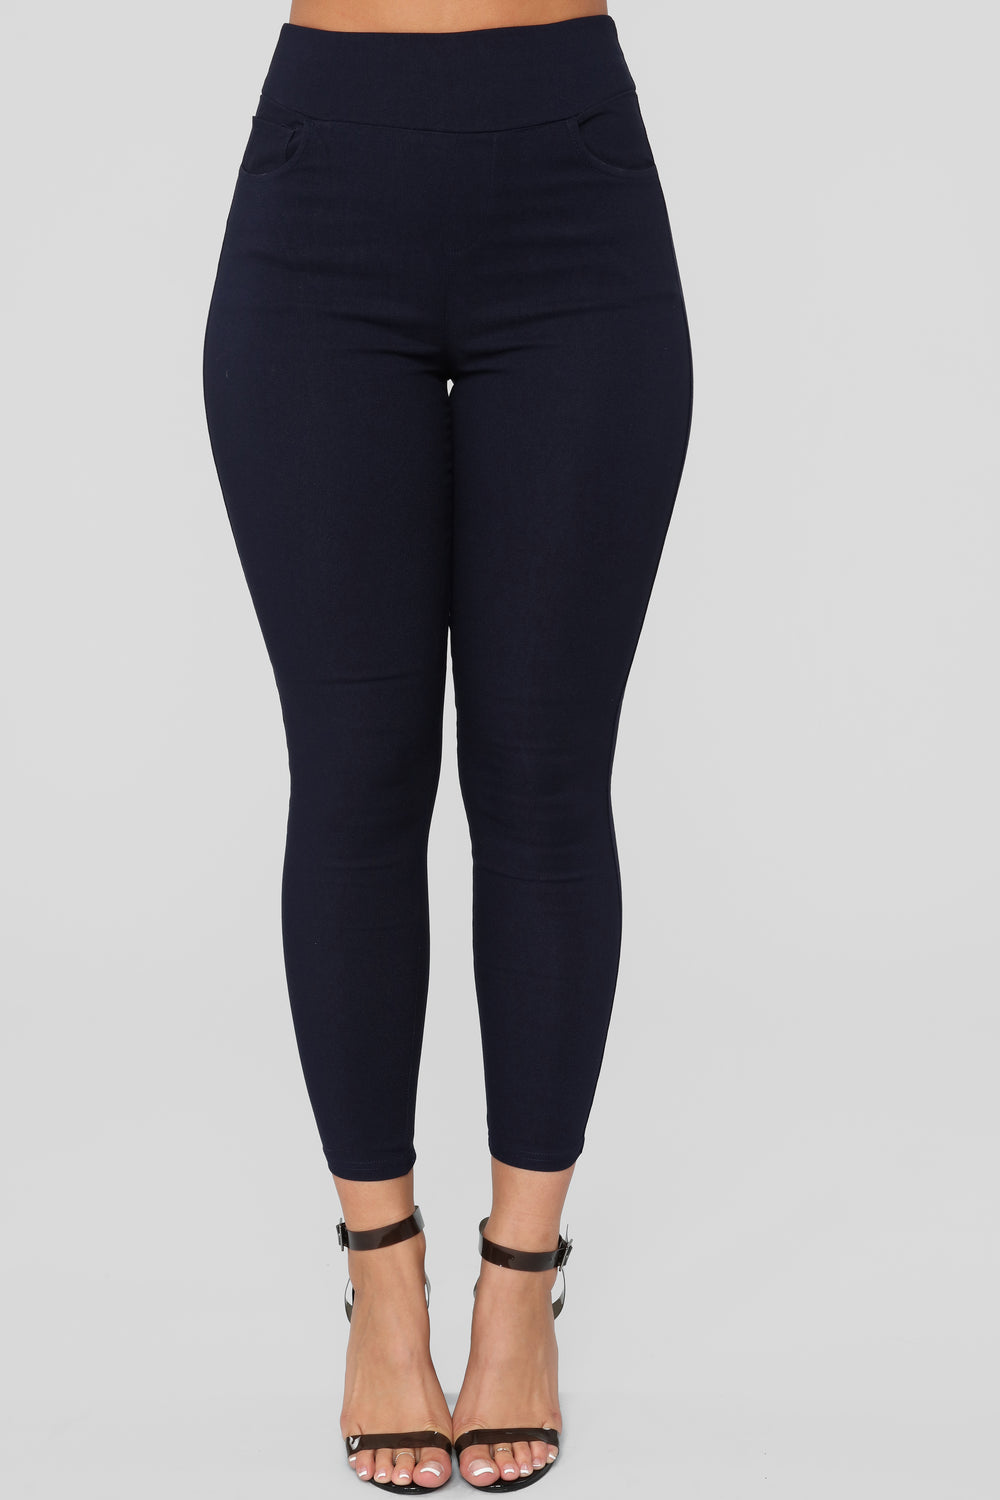 Favorite Feel Stretch Legging - Navy